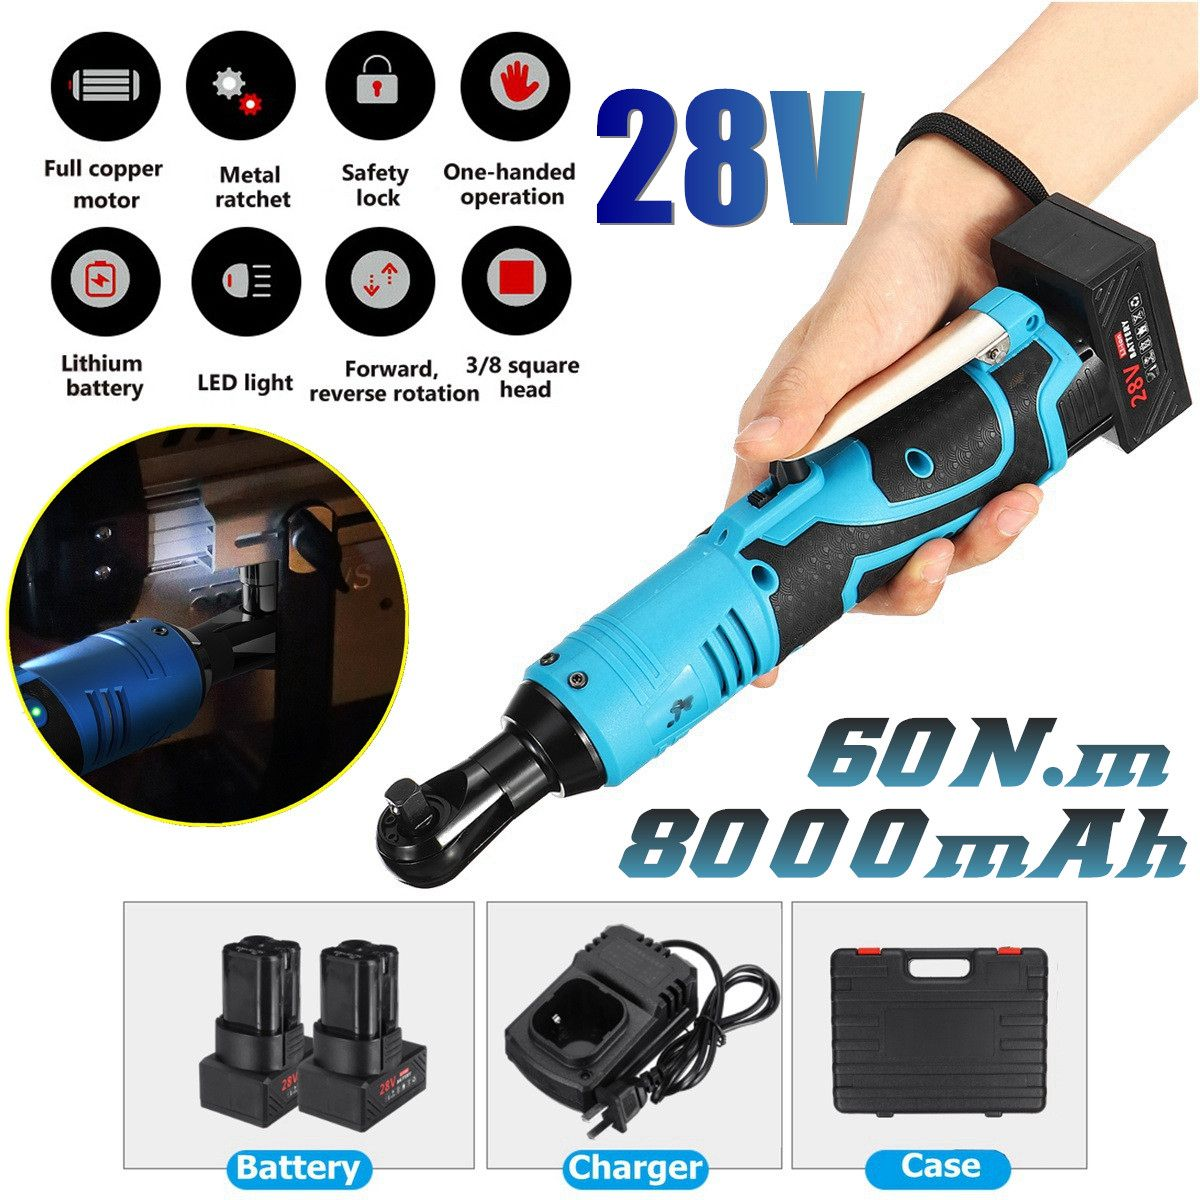 28V 8000mAh 60N.m 3/8 LED Lighting Cordless Electric Ratchet Wrench Set with 2pcs Li-Ion Battery Impact Wrench Power Tool28V 8000mAh 60N.m 3/8 LED Lighting Cordless Electric Ratchet Wrench Set with 2pcs Li-Ion Battery Impact Wrench Power Tool